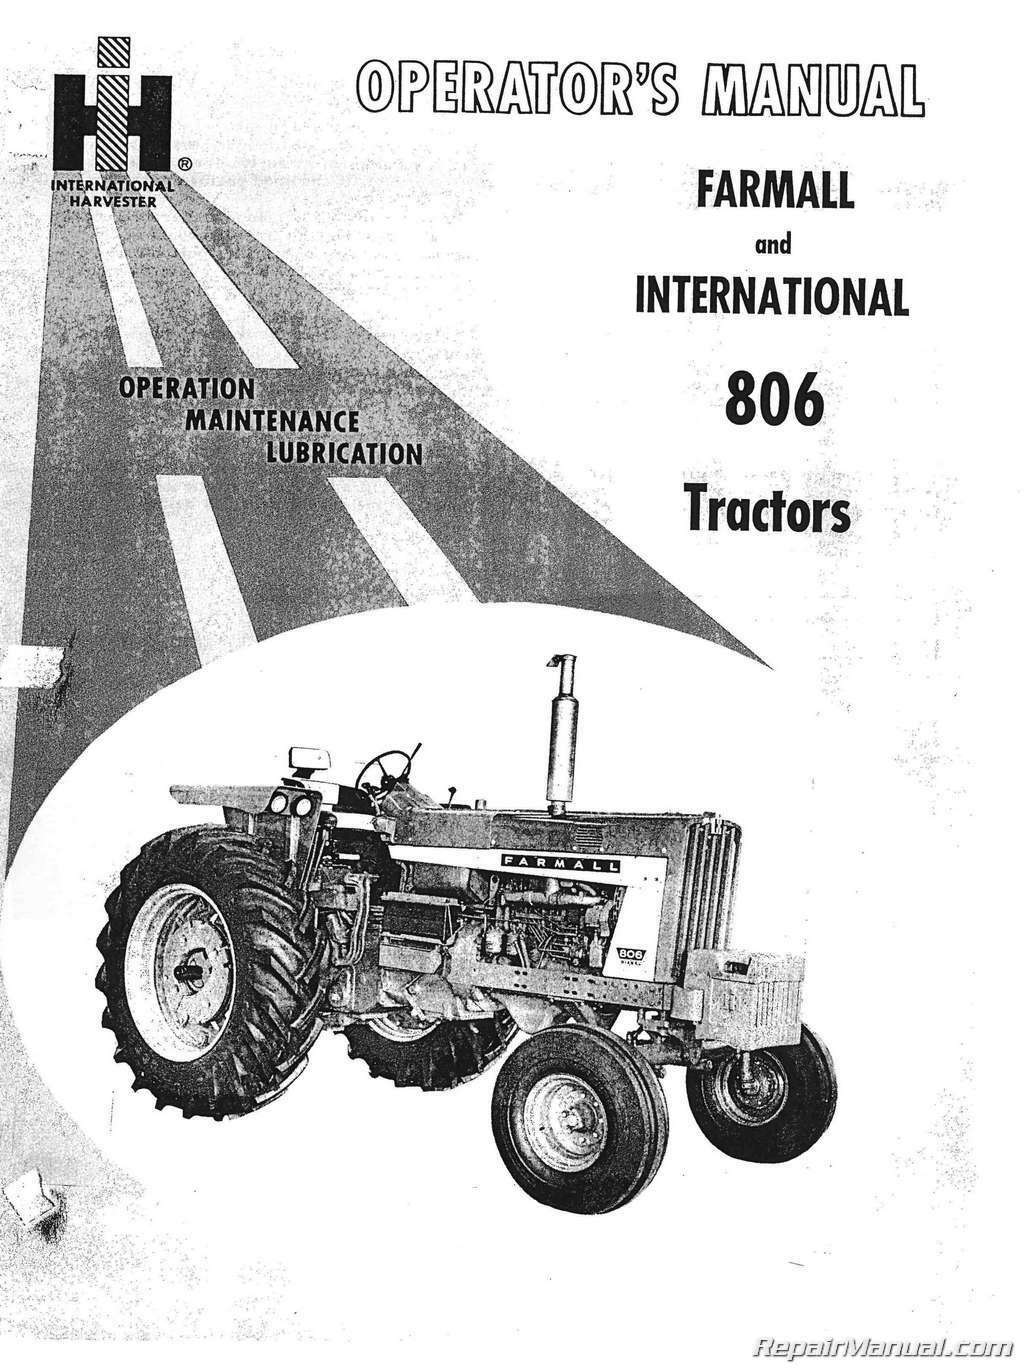 International Harvester Farmall 806 Tractor Operators Manual 1 of 1Only 4  available ...